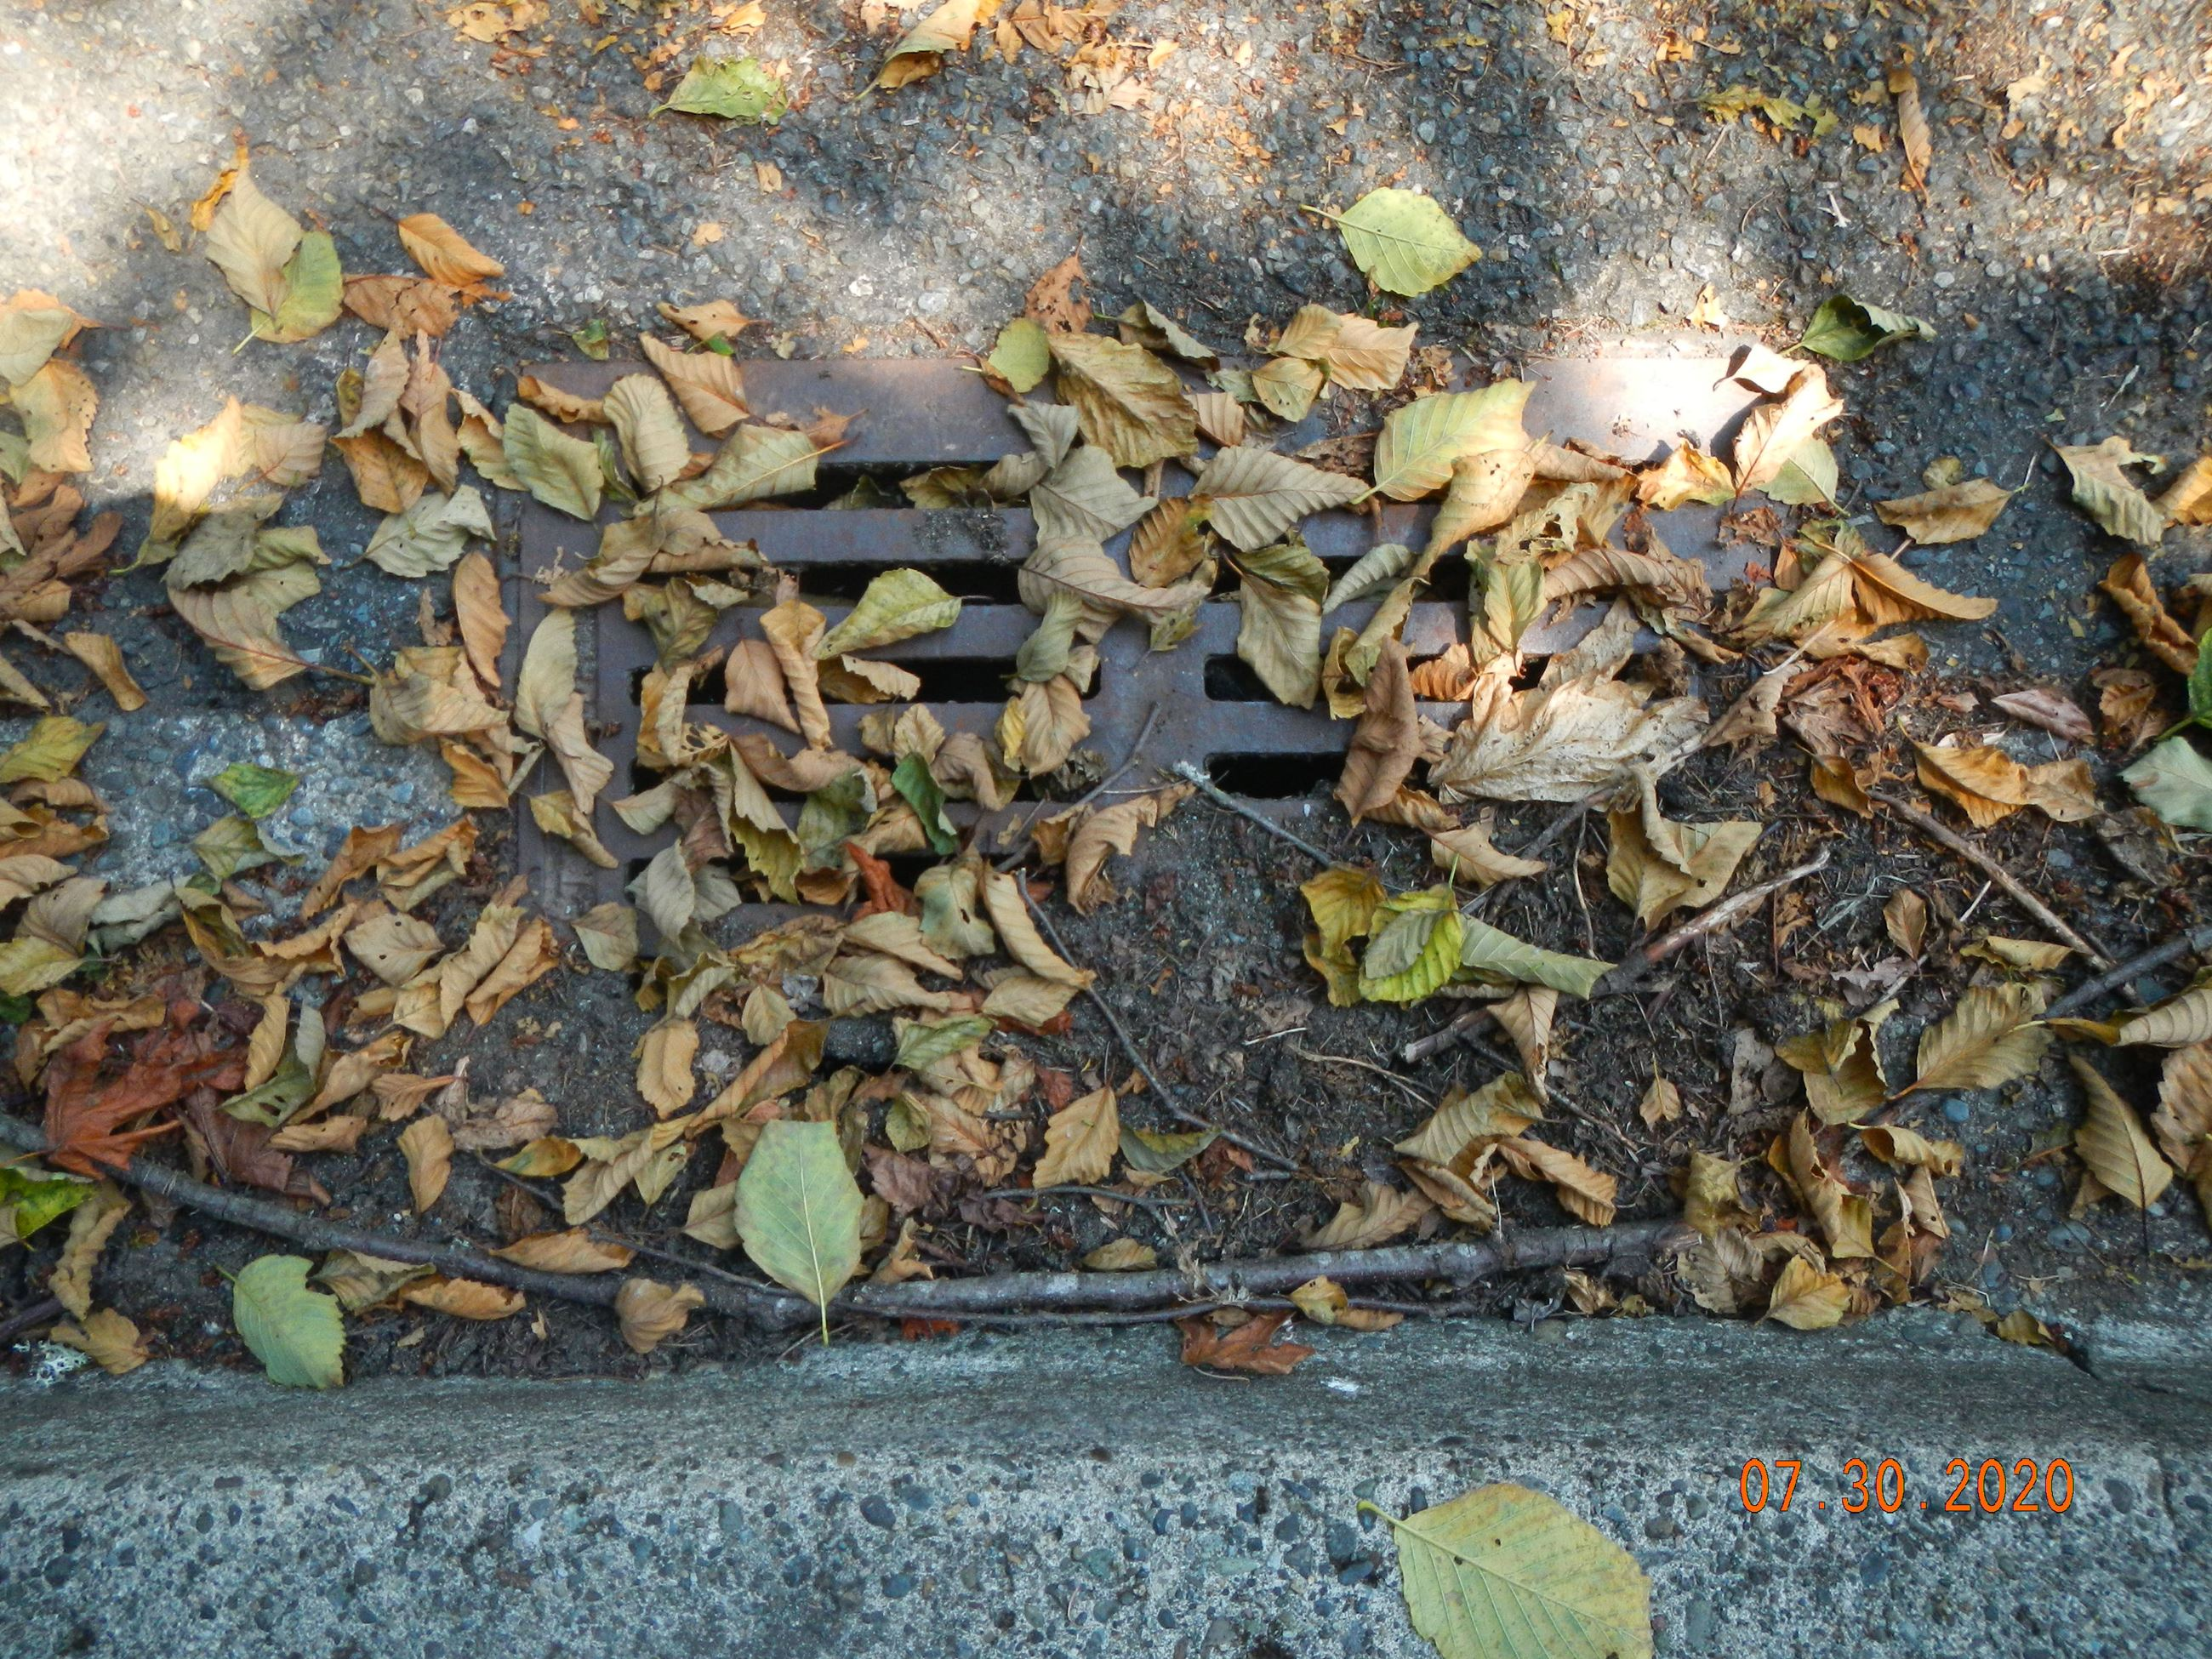 Leaves in catch basin